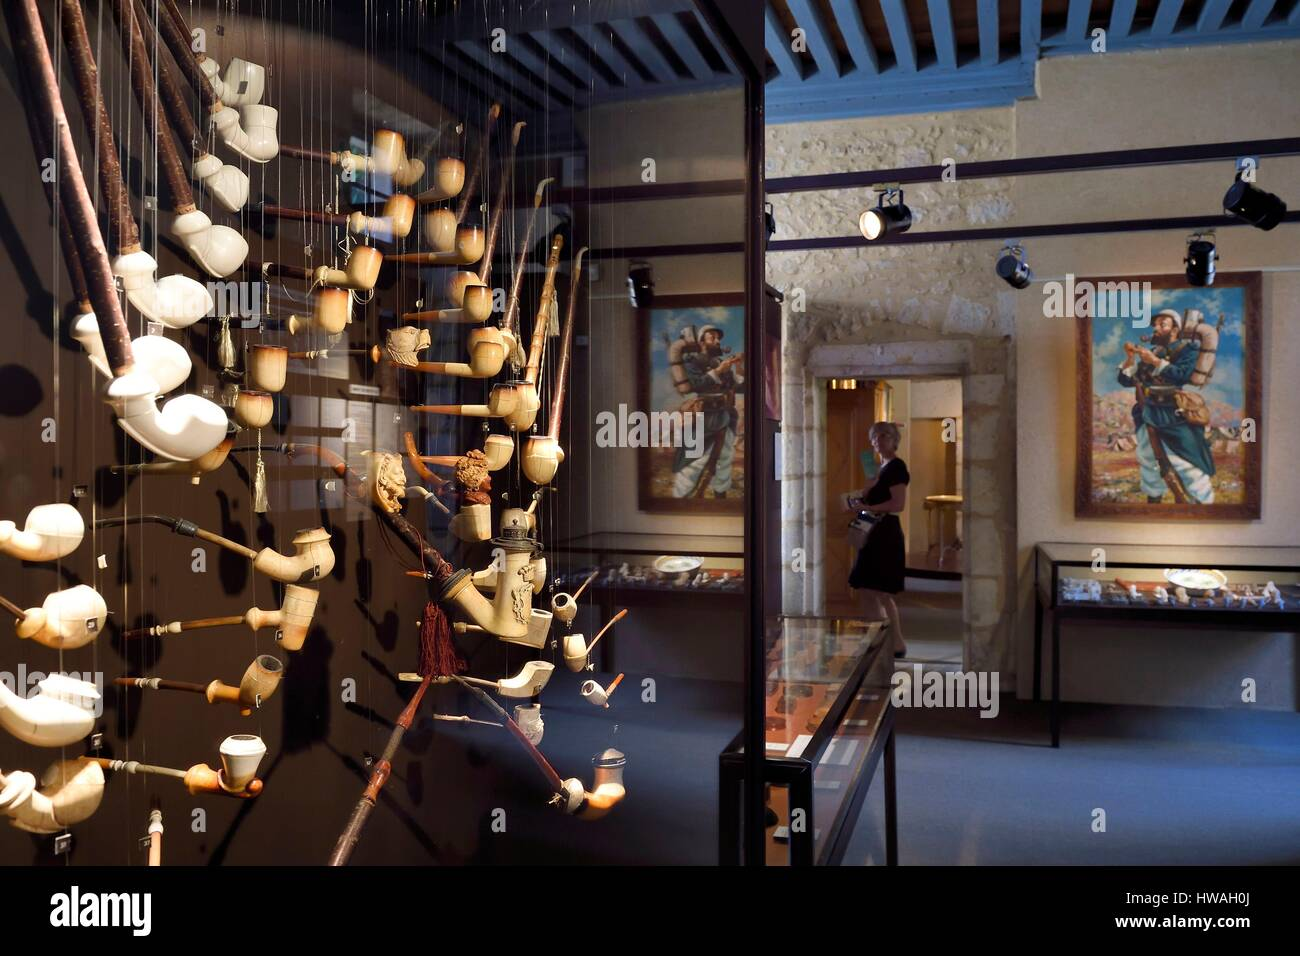 anthropology museum stock photos anthropology museum stock images alamy. Black Bedroom Furniture Sets. Home Design Ideas